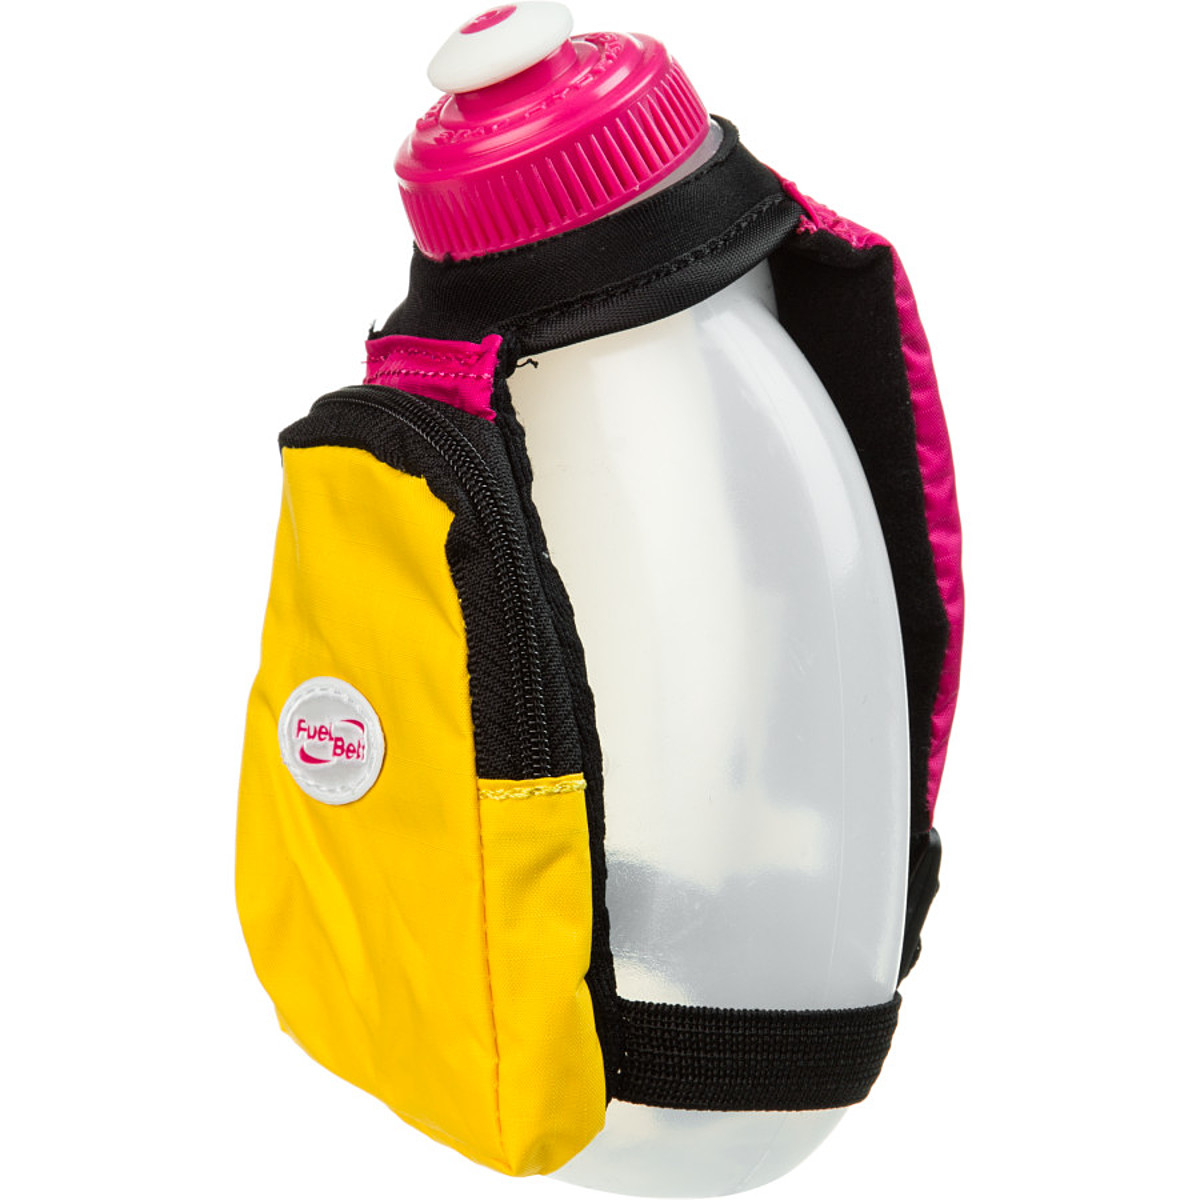 photo: Fuel Belt Sprint 10 oz Palm Holder water bottle